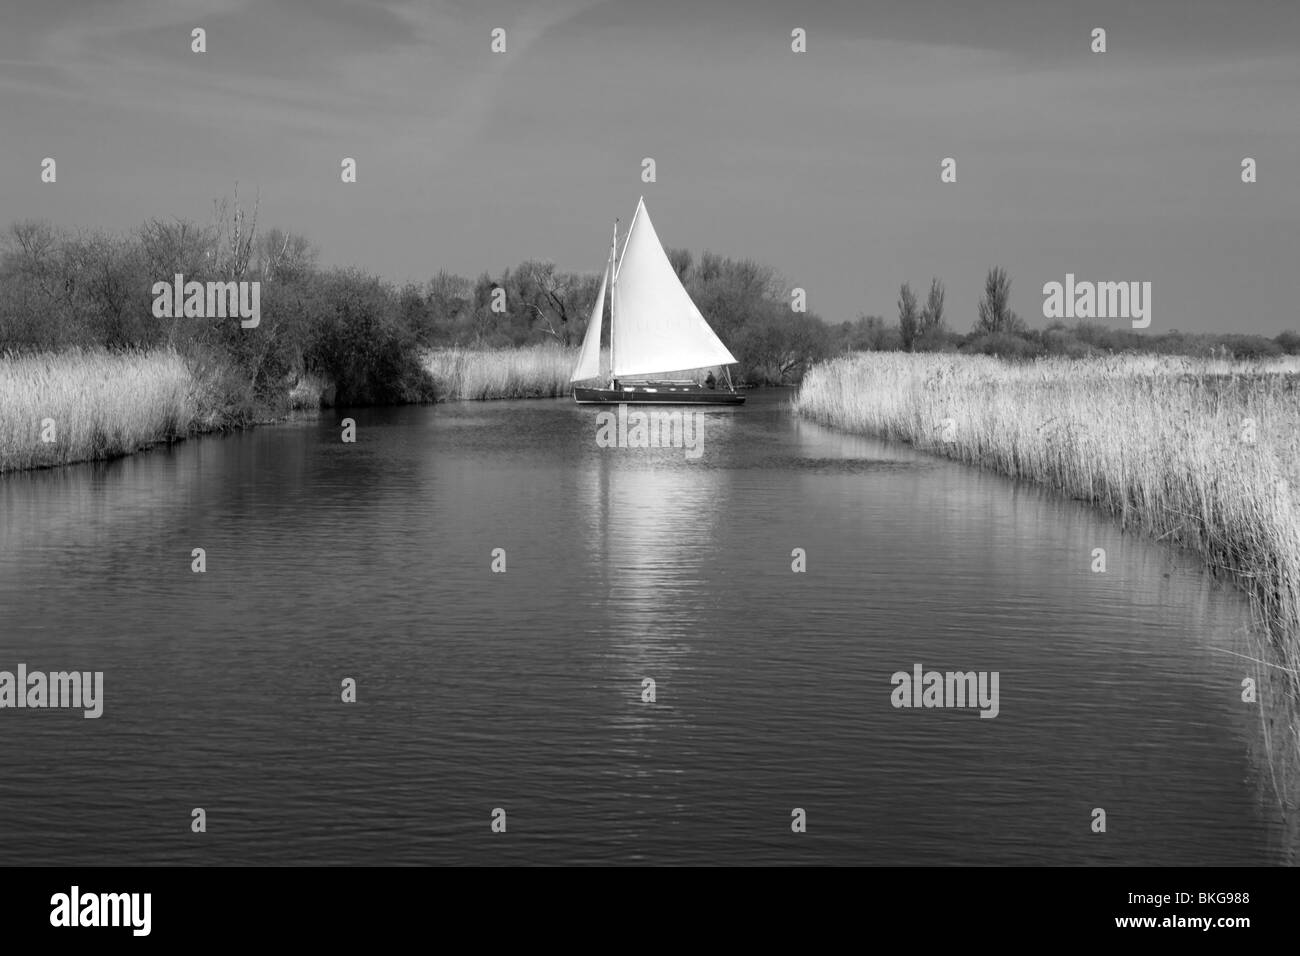 White Sail on the River - Stock Image